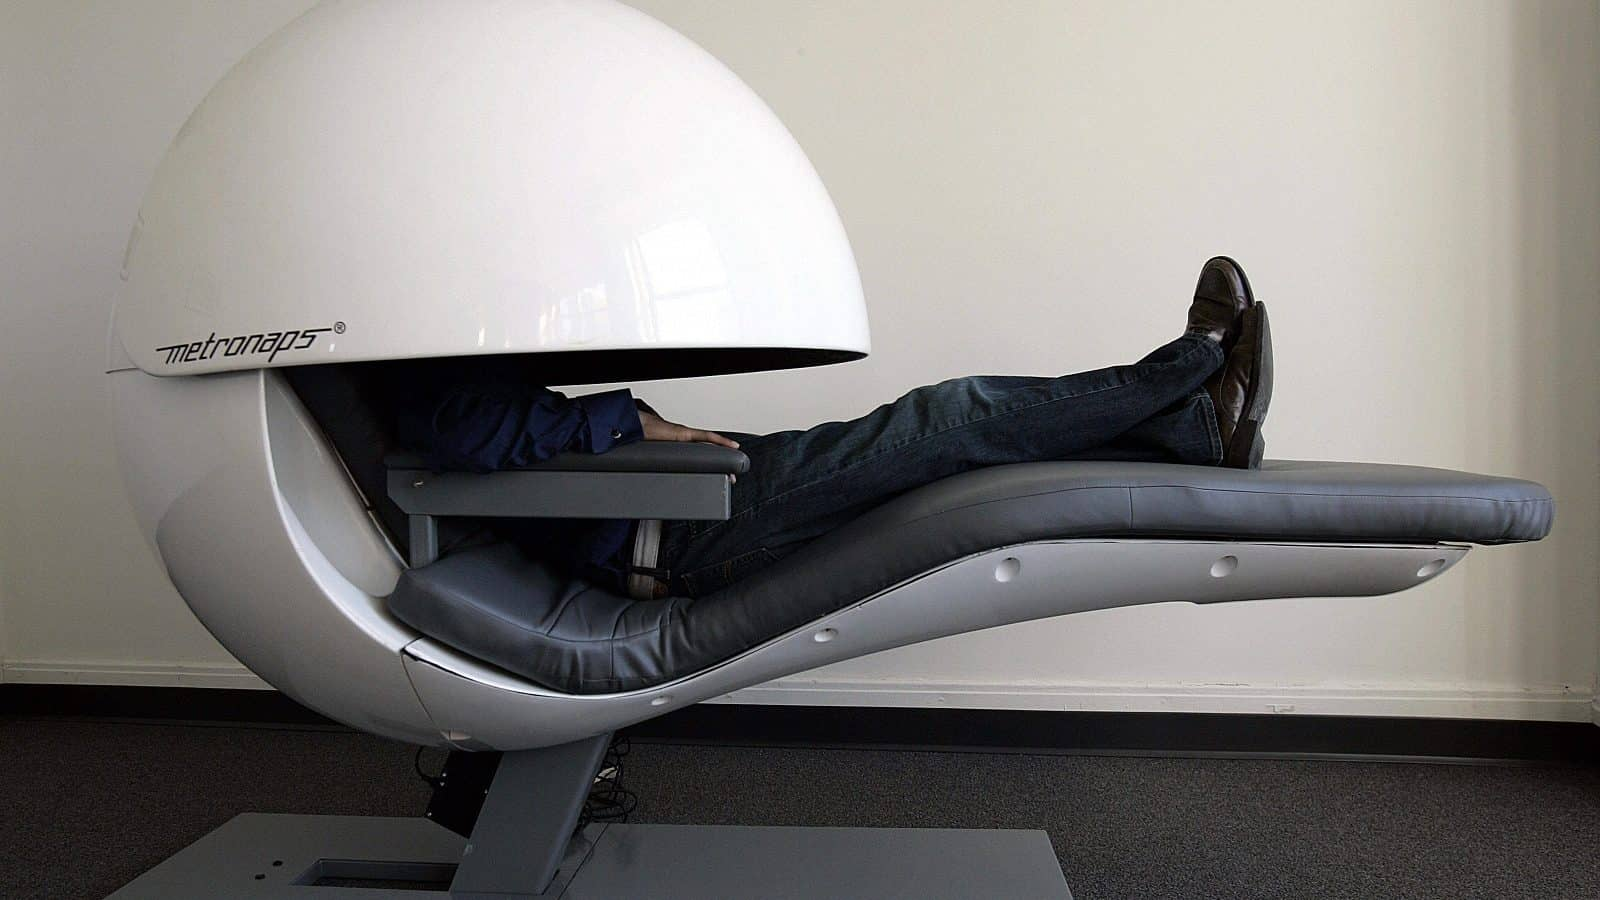 Best Sleep Pod